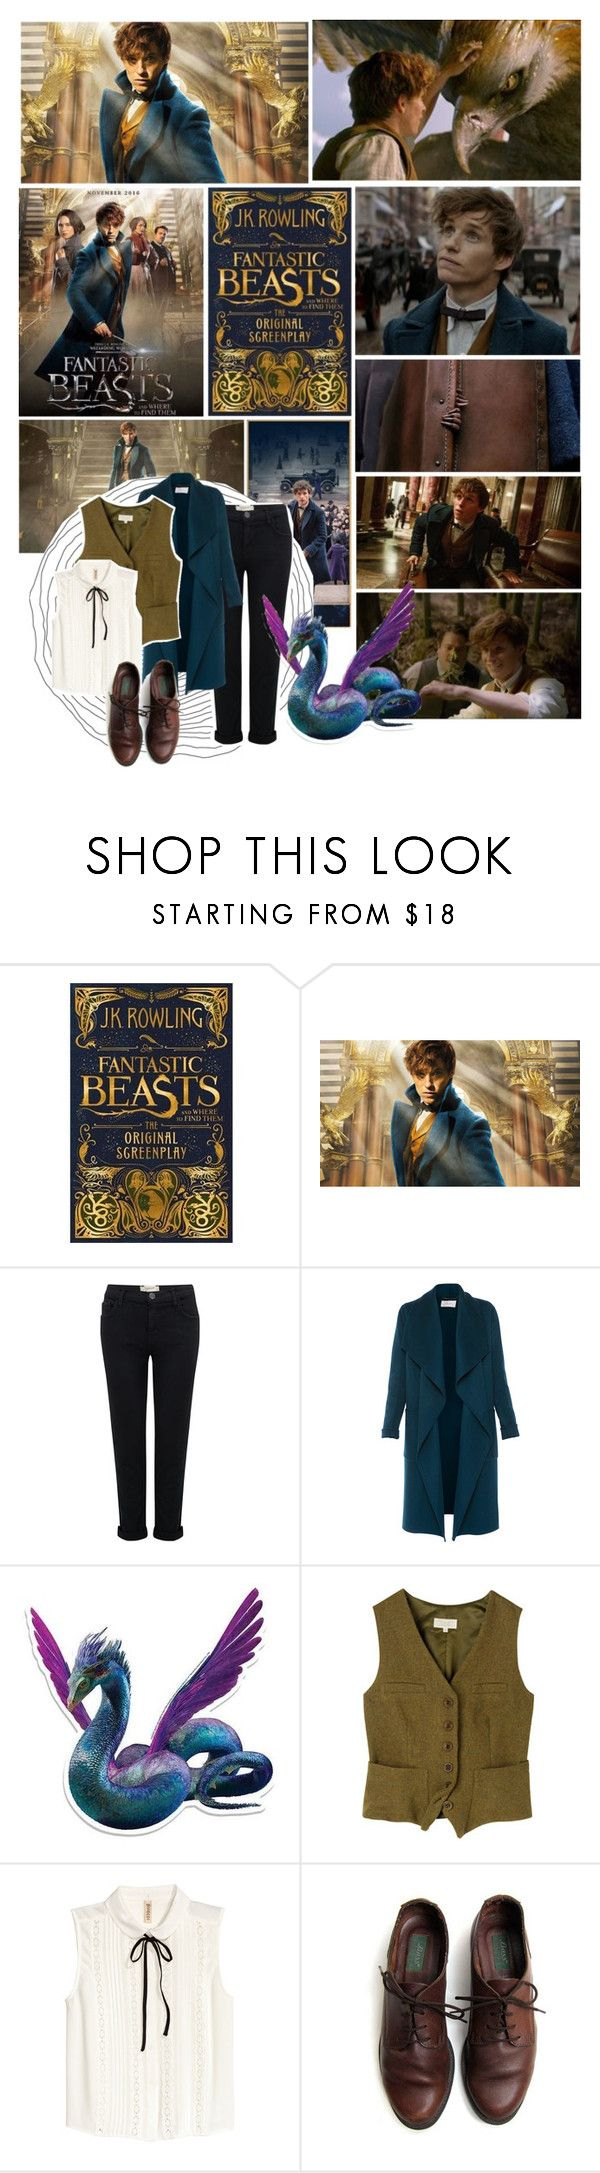 """""""Fantastic beasts and where to find them // Newt Scamander"""" by purplexlittlexbear ❤ liked on Polyvore featuring Trilogy, Radcliffe, Current/Elliott, L.K.Bennett, Toast and H&M"""